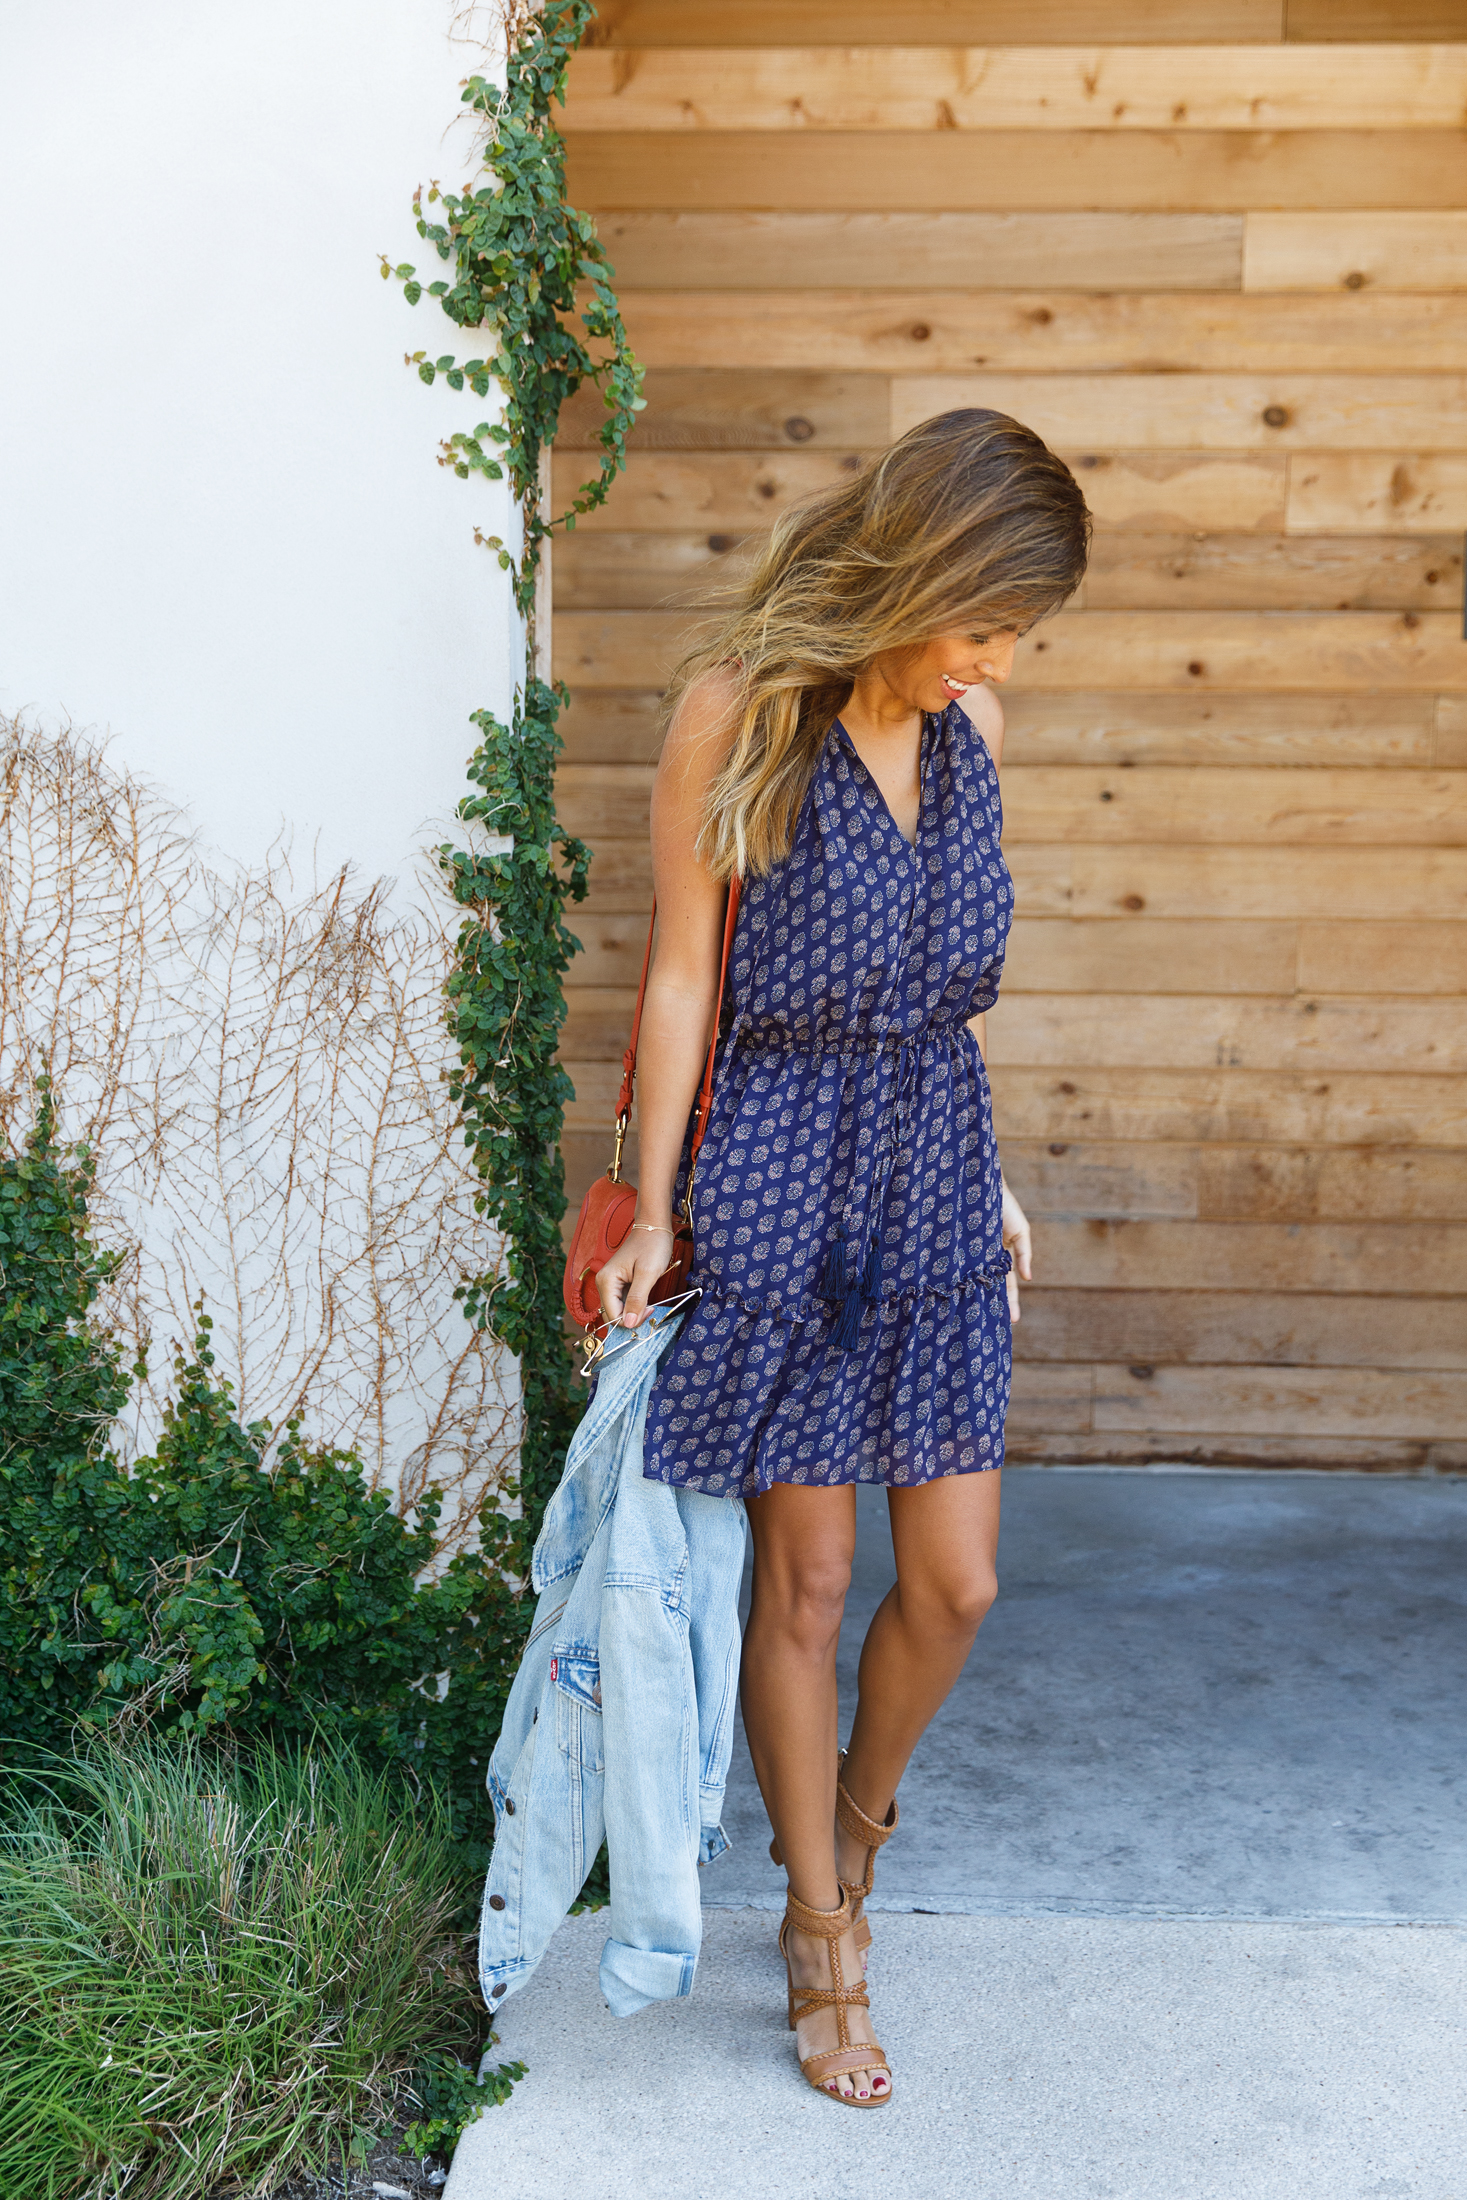 stitch fix, trying out stitch fix, what is stitch fix, everyday pursuits outfit